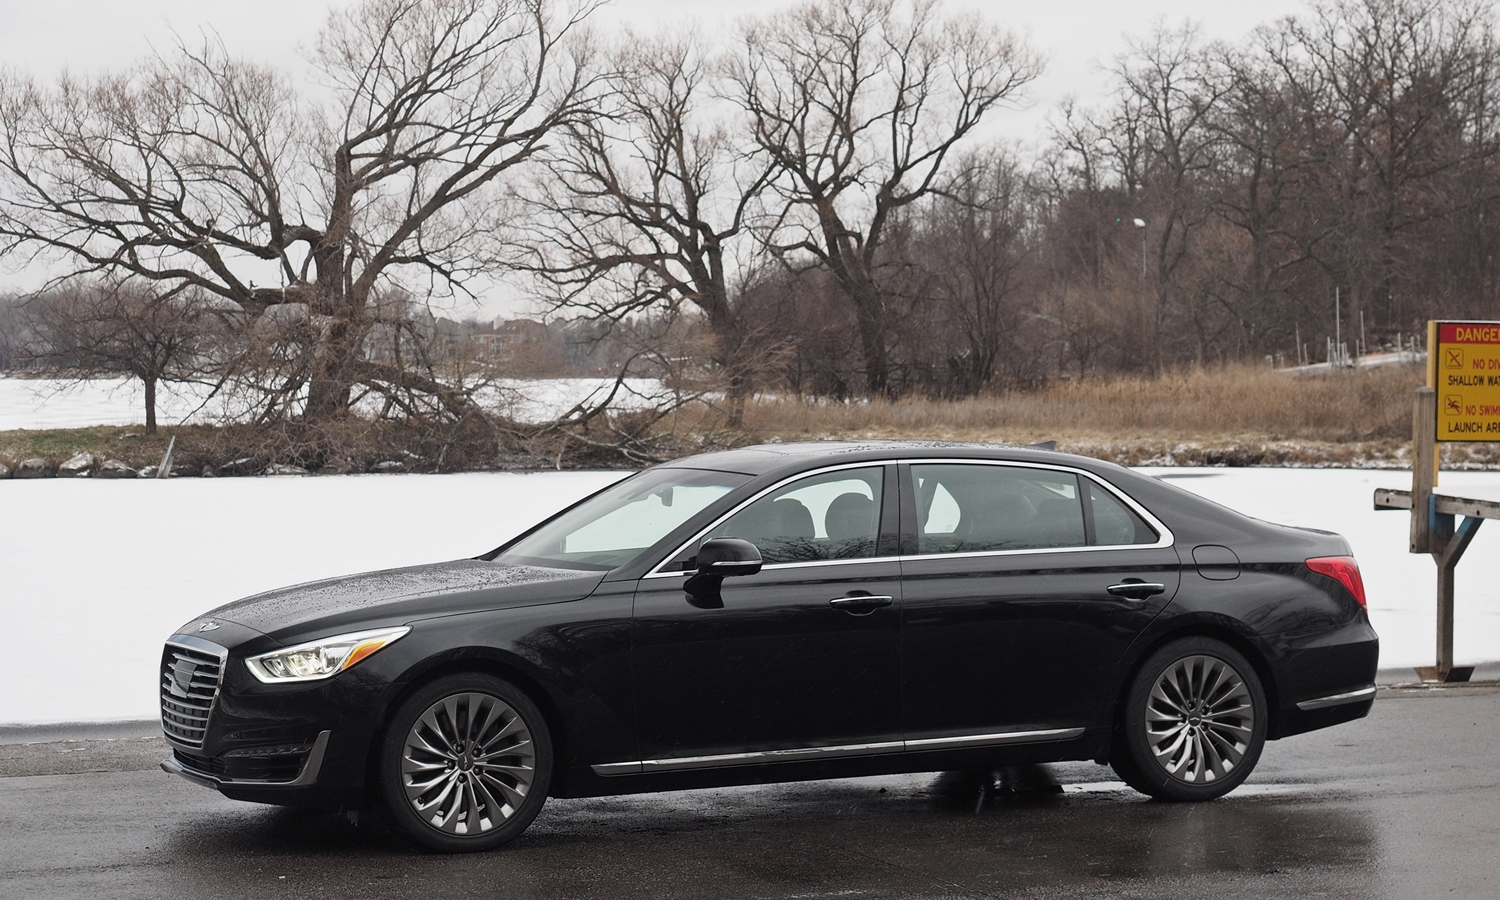 Genesis G90 Photos: 2017 Genesis G90 front side view